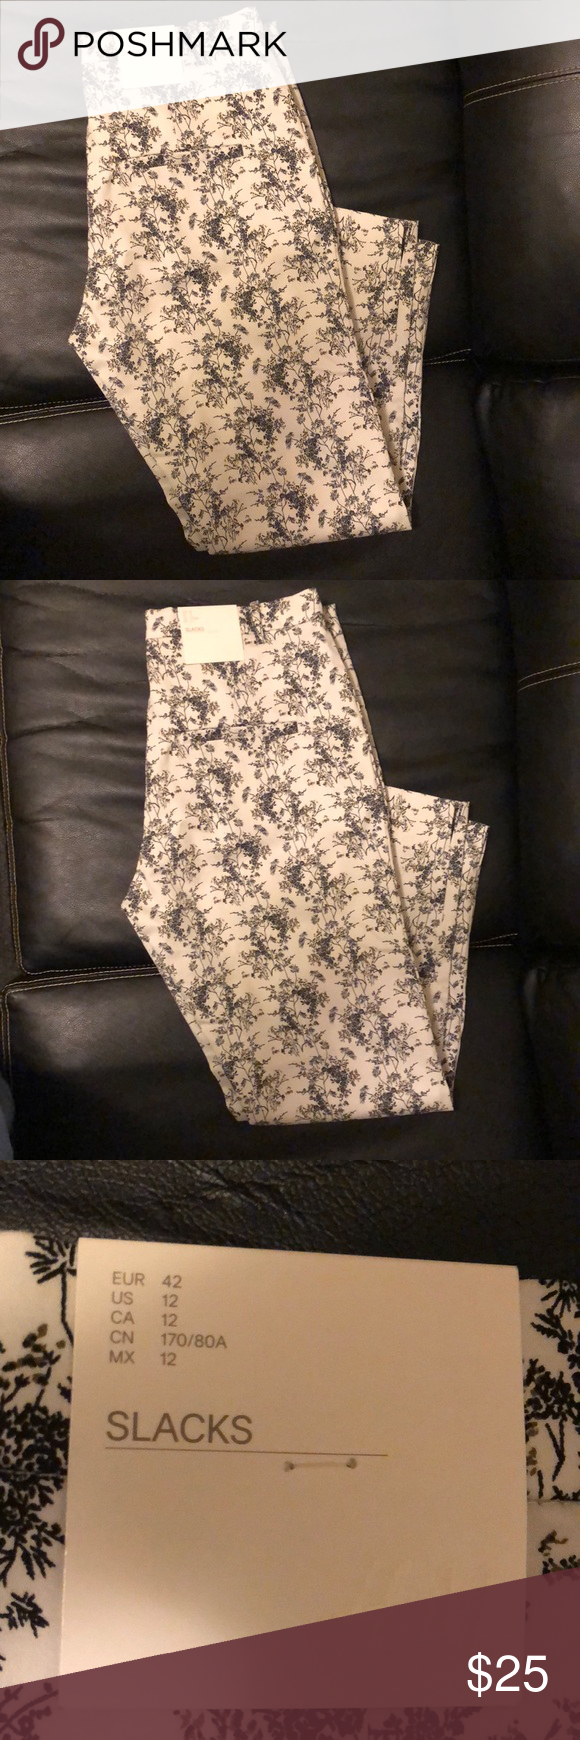 Black and white Slacks Black and white slacks H&M Size 12 Brand new with tags H&M Pants Skinny #whiteslacks Black and white Slacks Black and white slacks H&M Size 12 Brand new with tags H&M Pants Skinny #whiteslacks